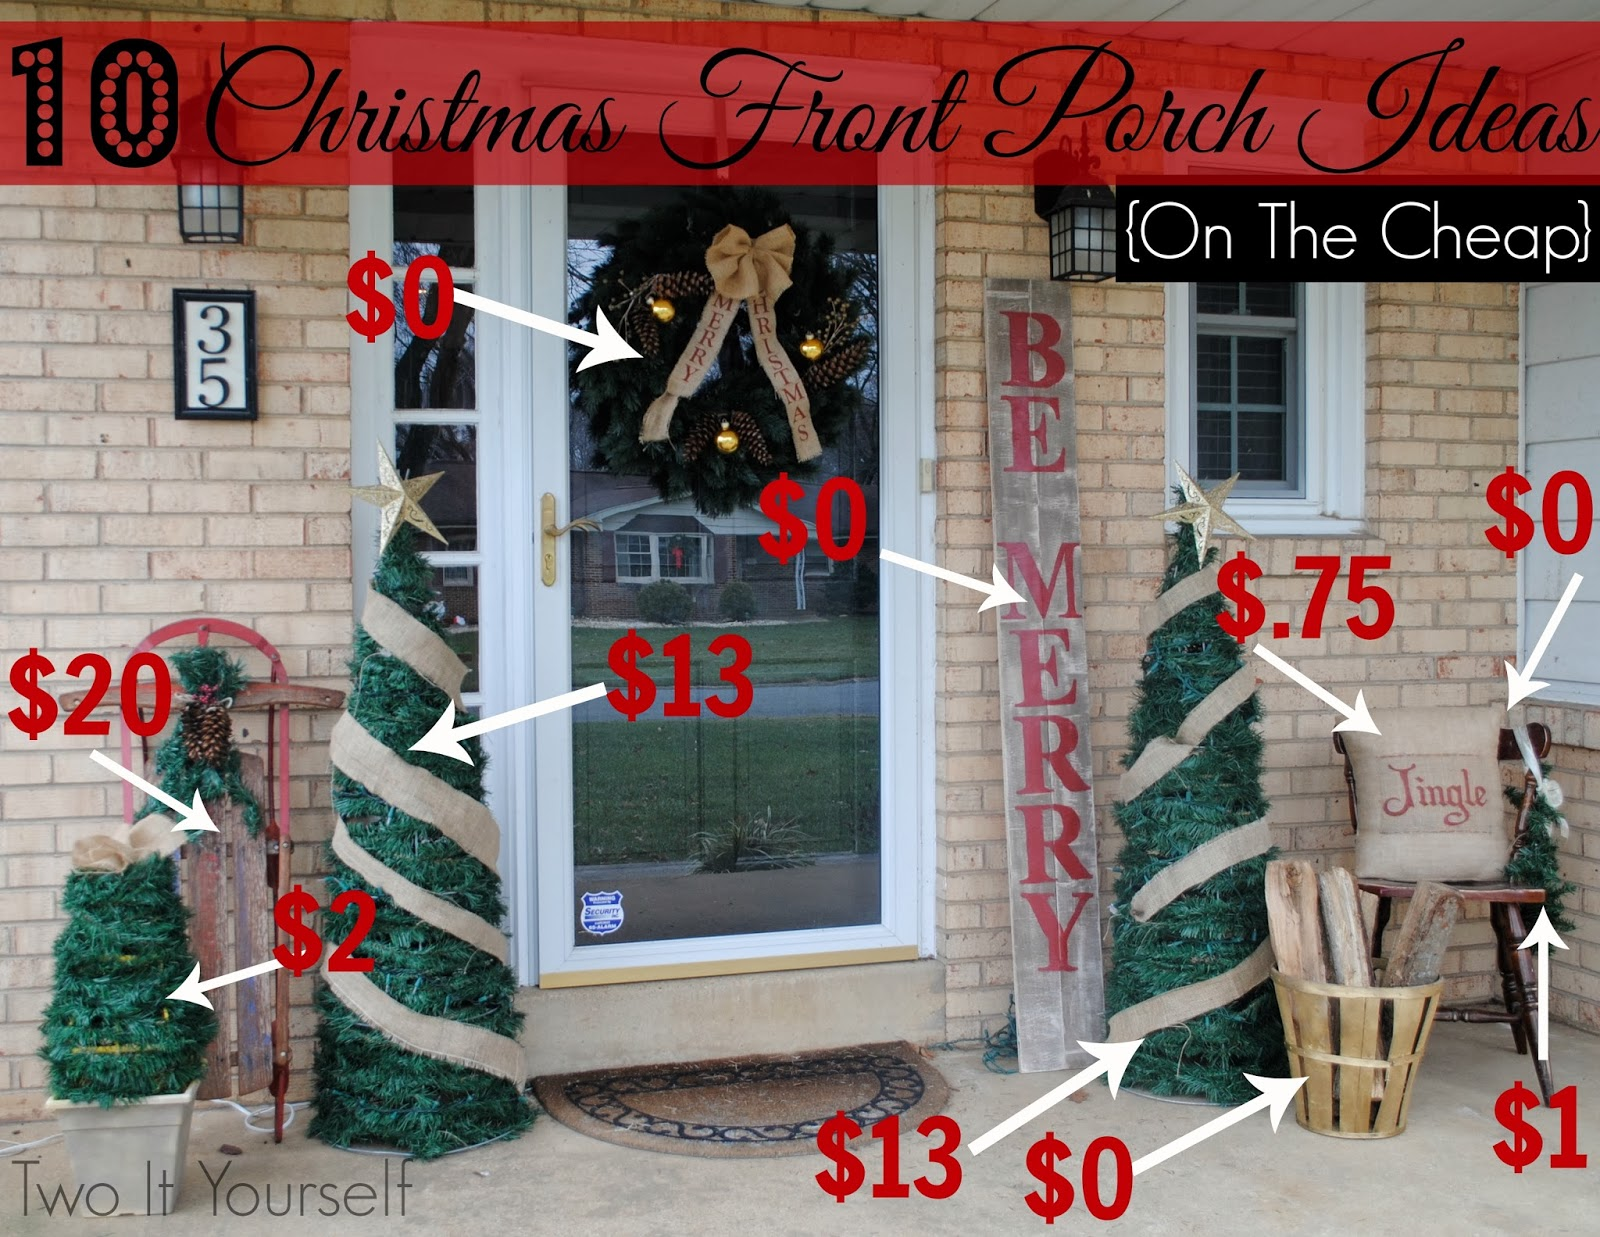 Two it yourself 10 christmas front porch ideas on the cheap solutioingenieria Images